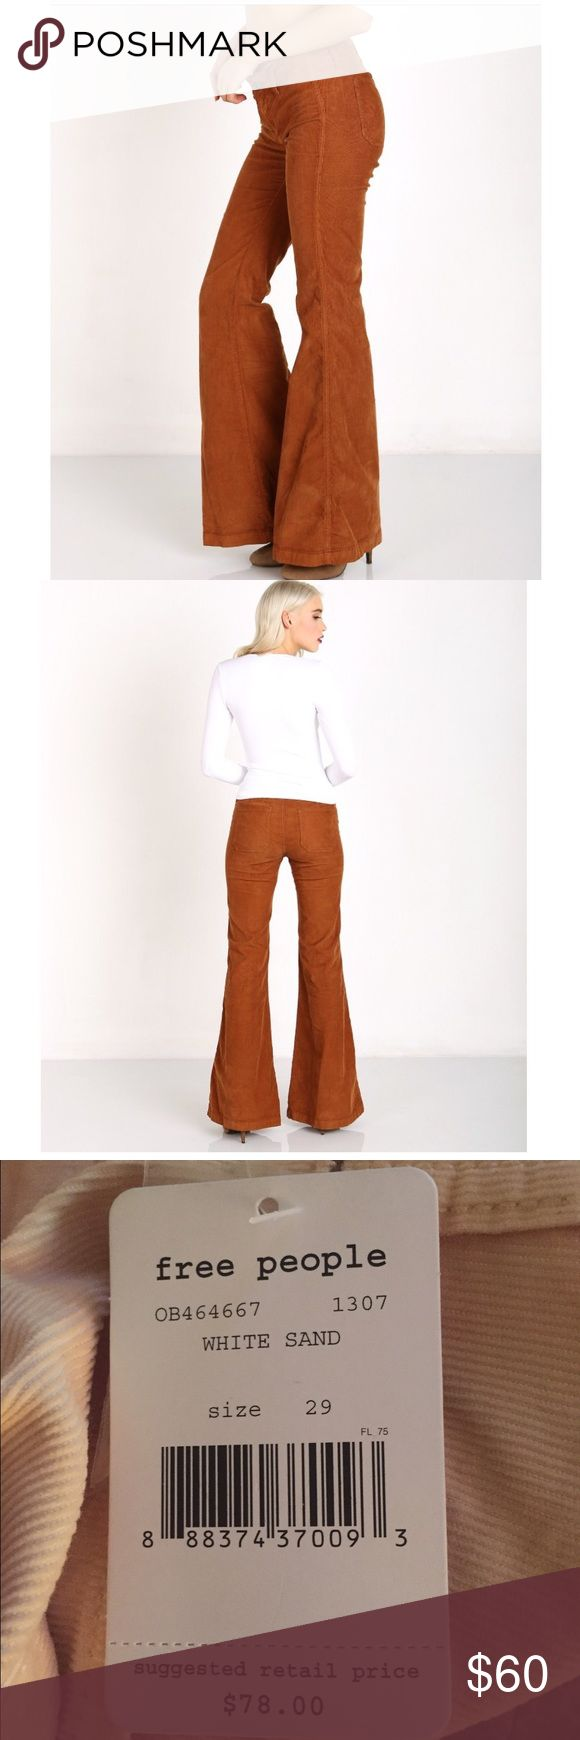 Free People Jolene Clean Cord Pants NWT. White Sand Cozy corduroy Free People flares. Actual color is pictured are the 2 last pictures. Open to offers! Free People Pants Boot Cut & Flare